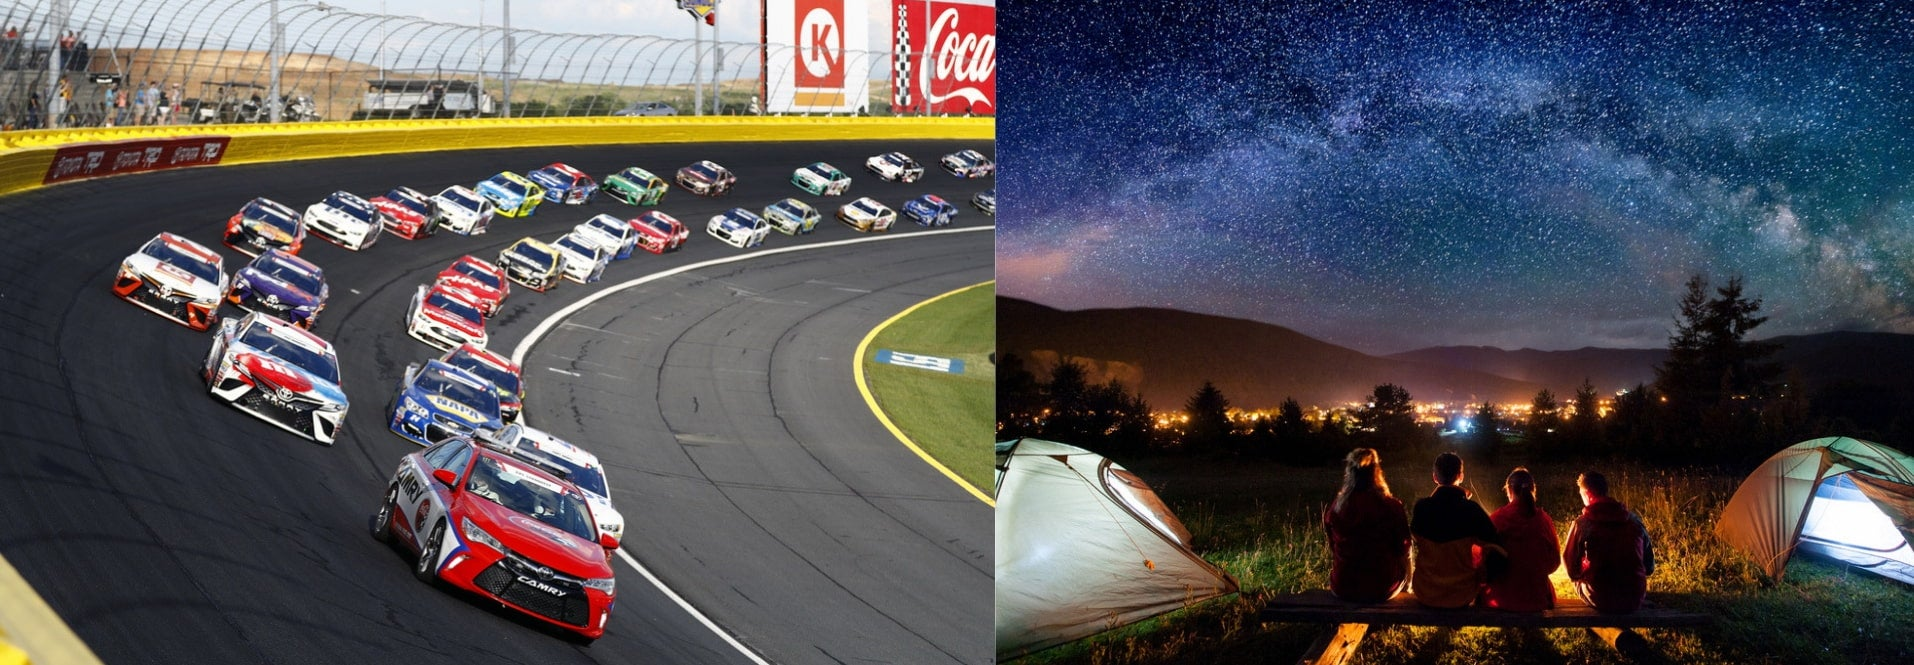 (left) dozens of vehicles approaching on an angled nascar track (right) long exposure of starry night sky over group campsite